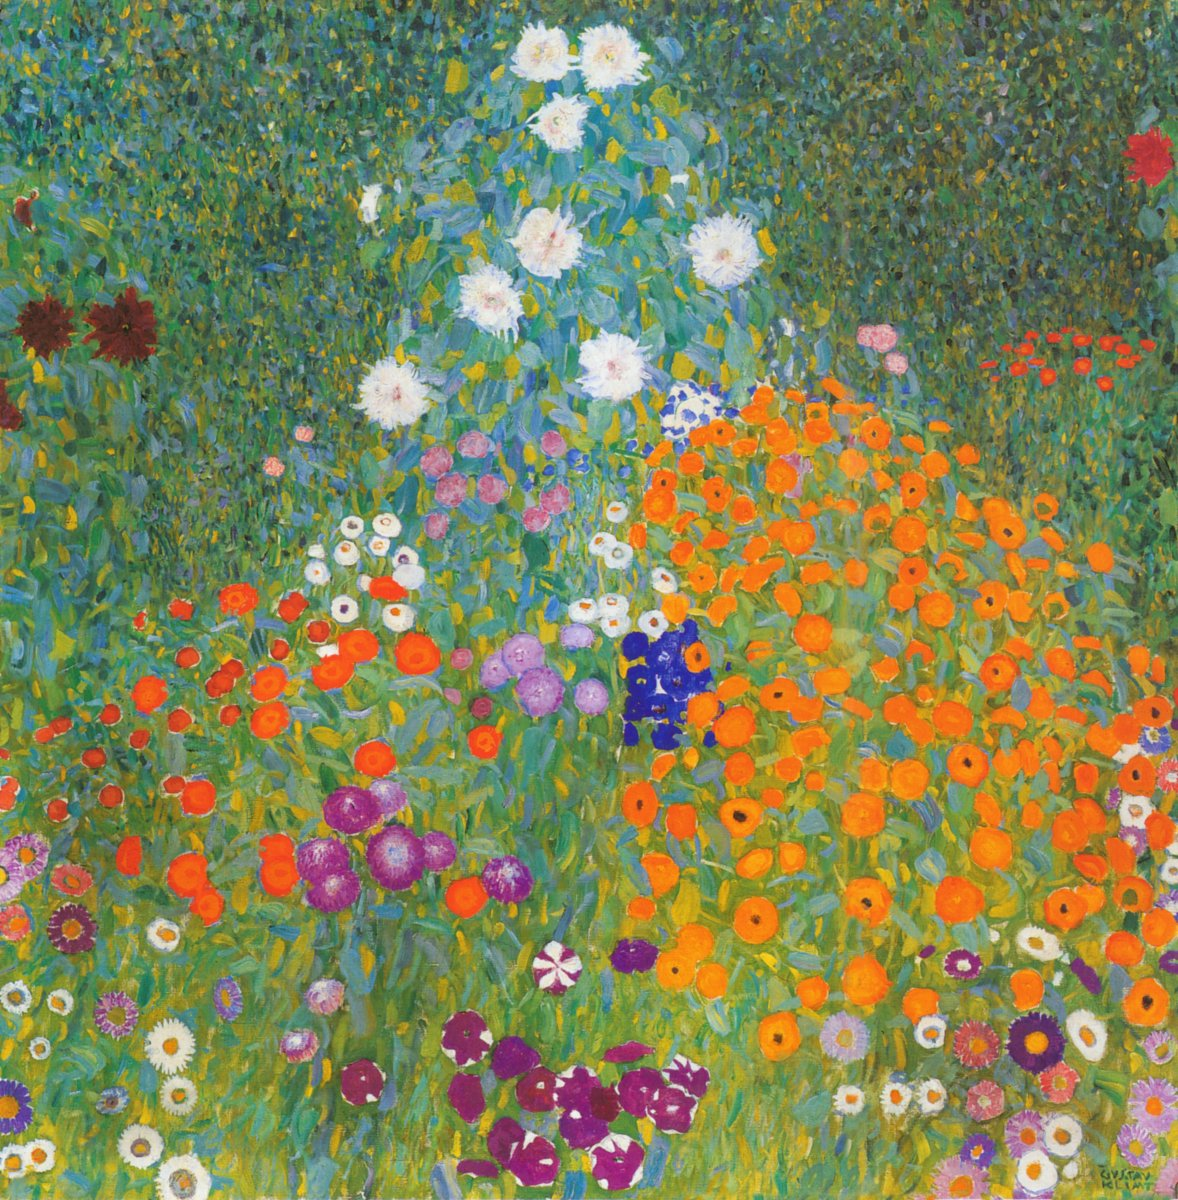 Gustav Klimt's landscape, Bauerngarten (1907), sold for $59.3 million.